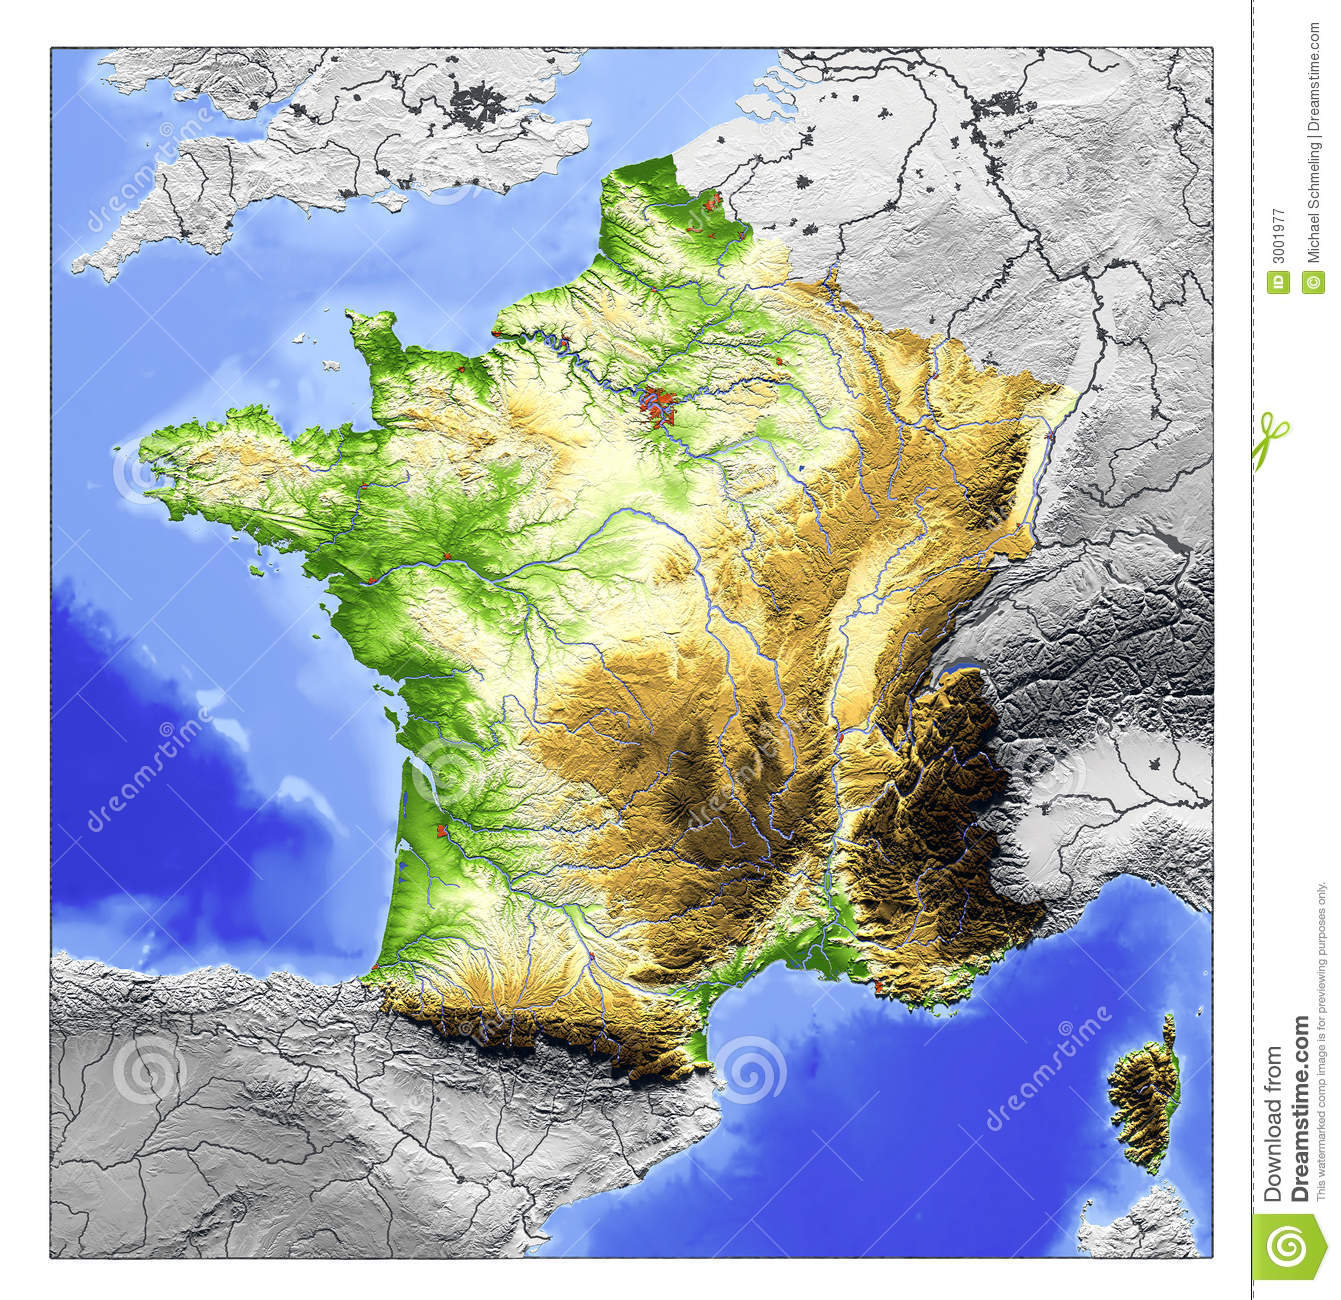 France Relief Map Stock Illustration Illustration Of Earth 3001977